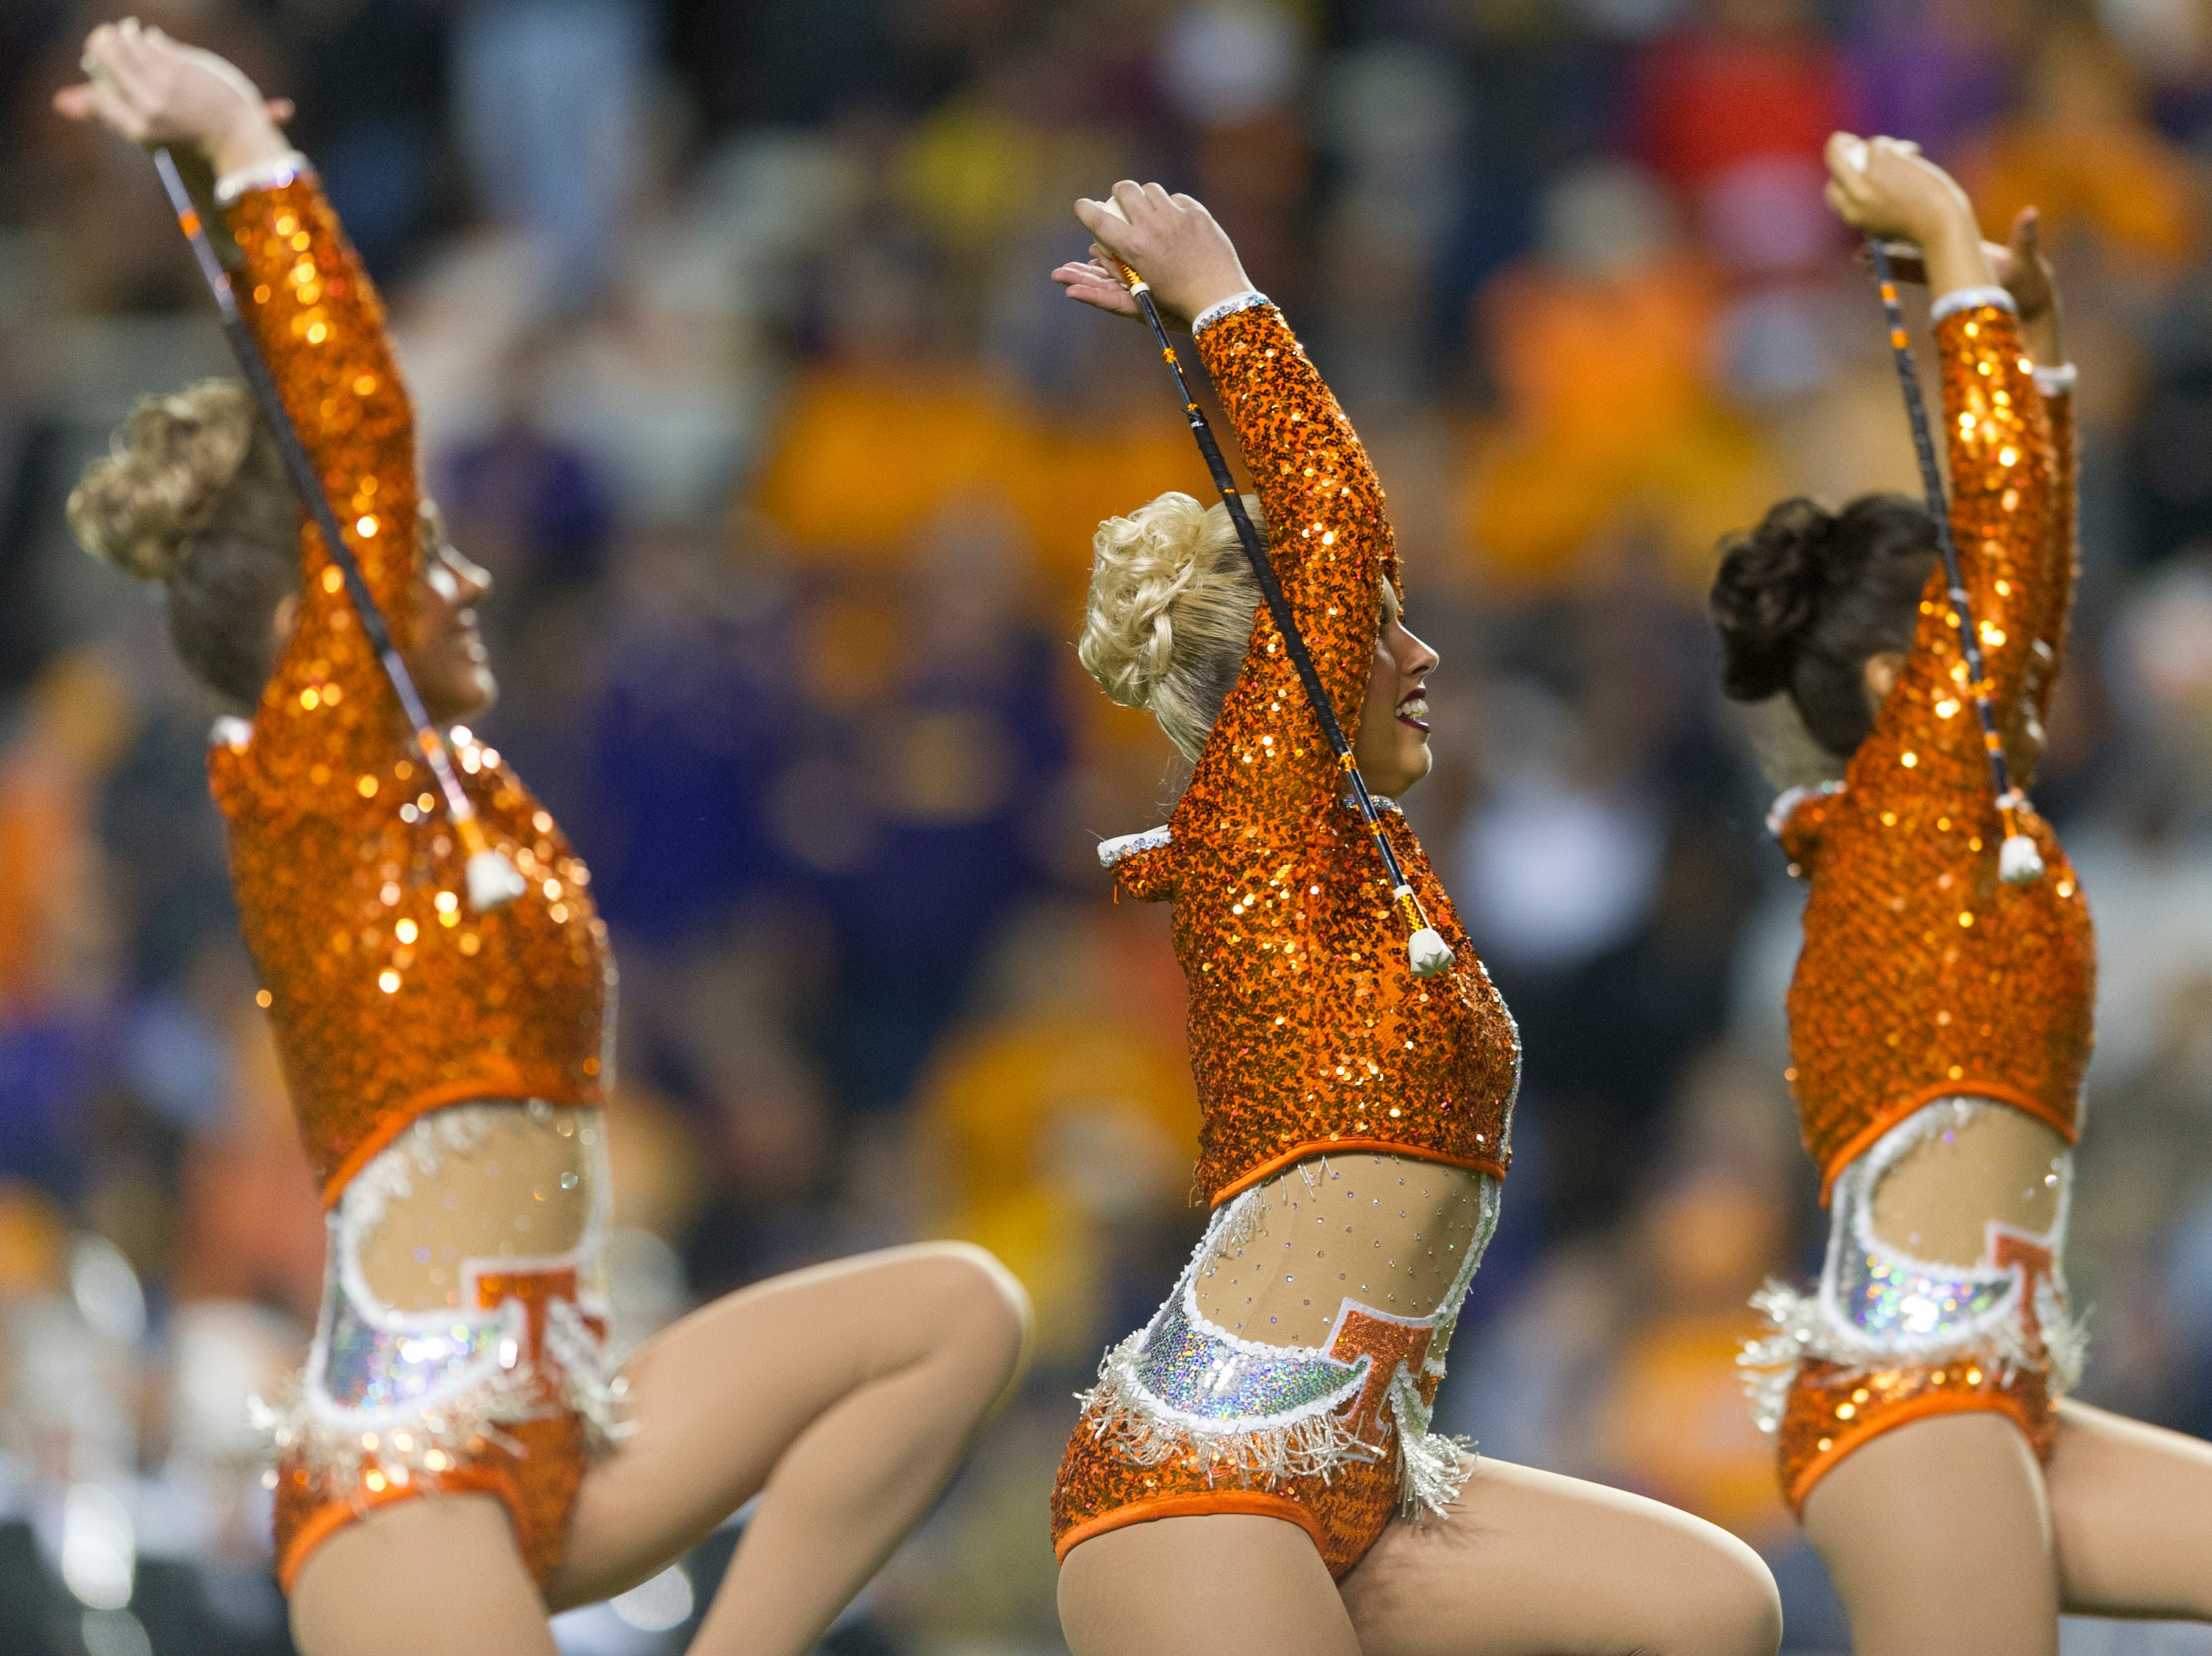 Majorettes perform during a game between Tennessee and LSU at Neyland Stadium in Knoxville, Tennessee, on Saturday, Nov. 18, 2017.